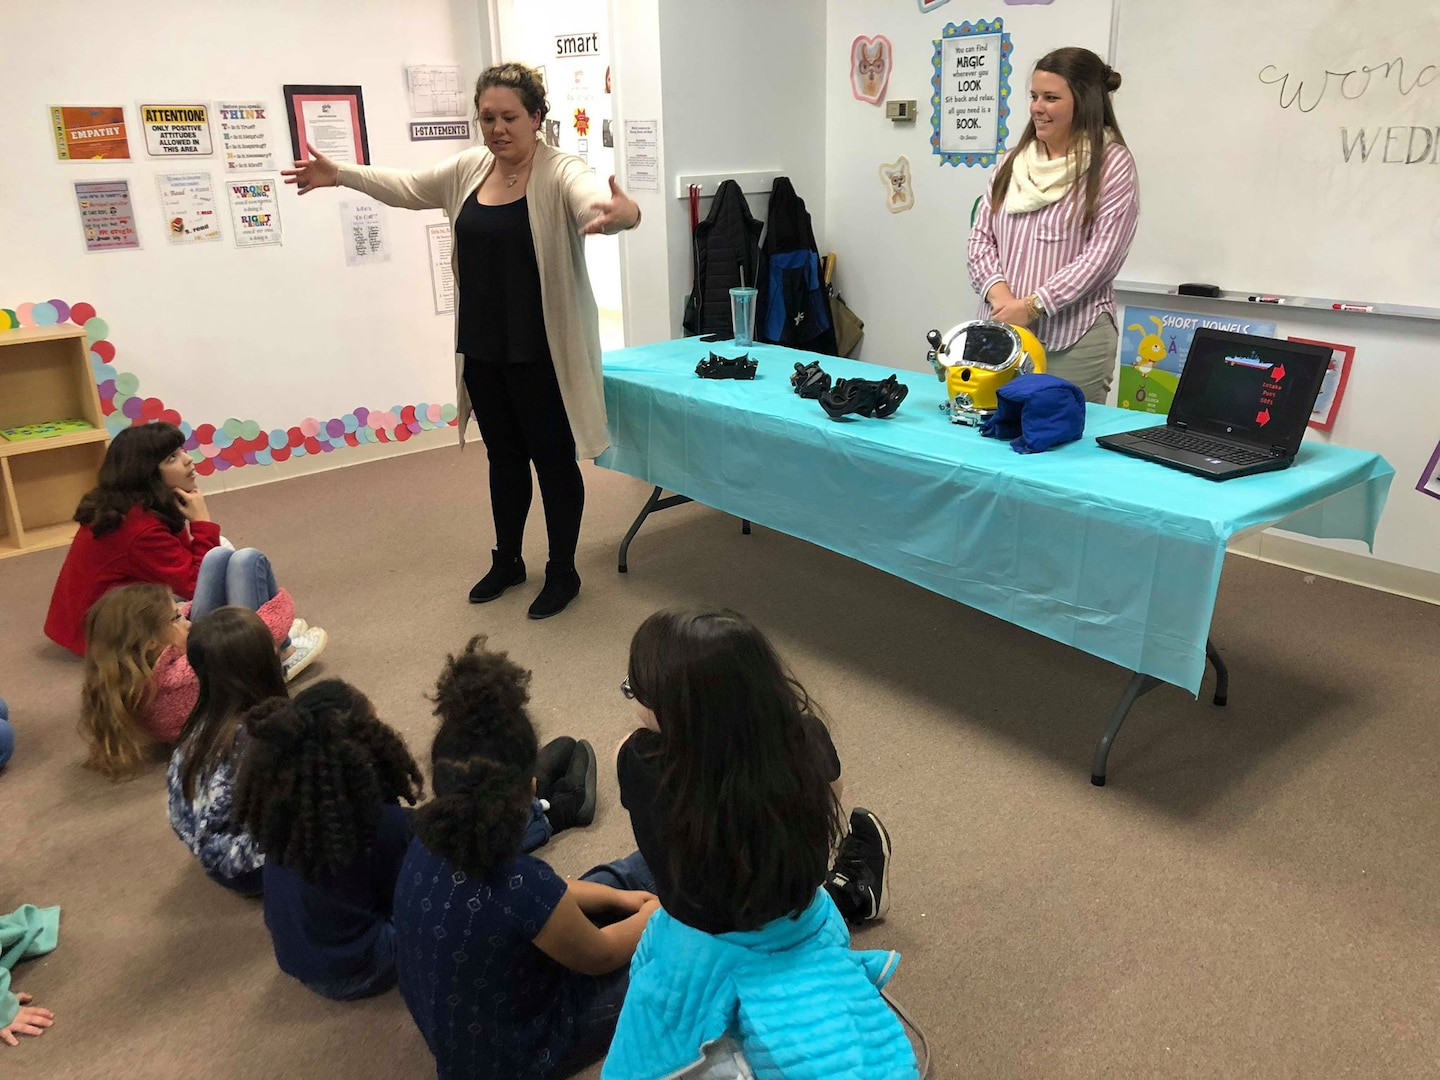 Naval Surface Warfare Center Panama City Division Science, Technology, Engineering, and Mathematics (STEM) Outreach Programs Manager Paige George (left) and Mechanical Engineer Allie Williams (right) describe diving and life support systems capabilities at a Girls Inc. STEM outreach event Jan. 30, 2019. U.S. Navy photo by Katherine Mapp